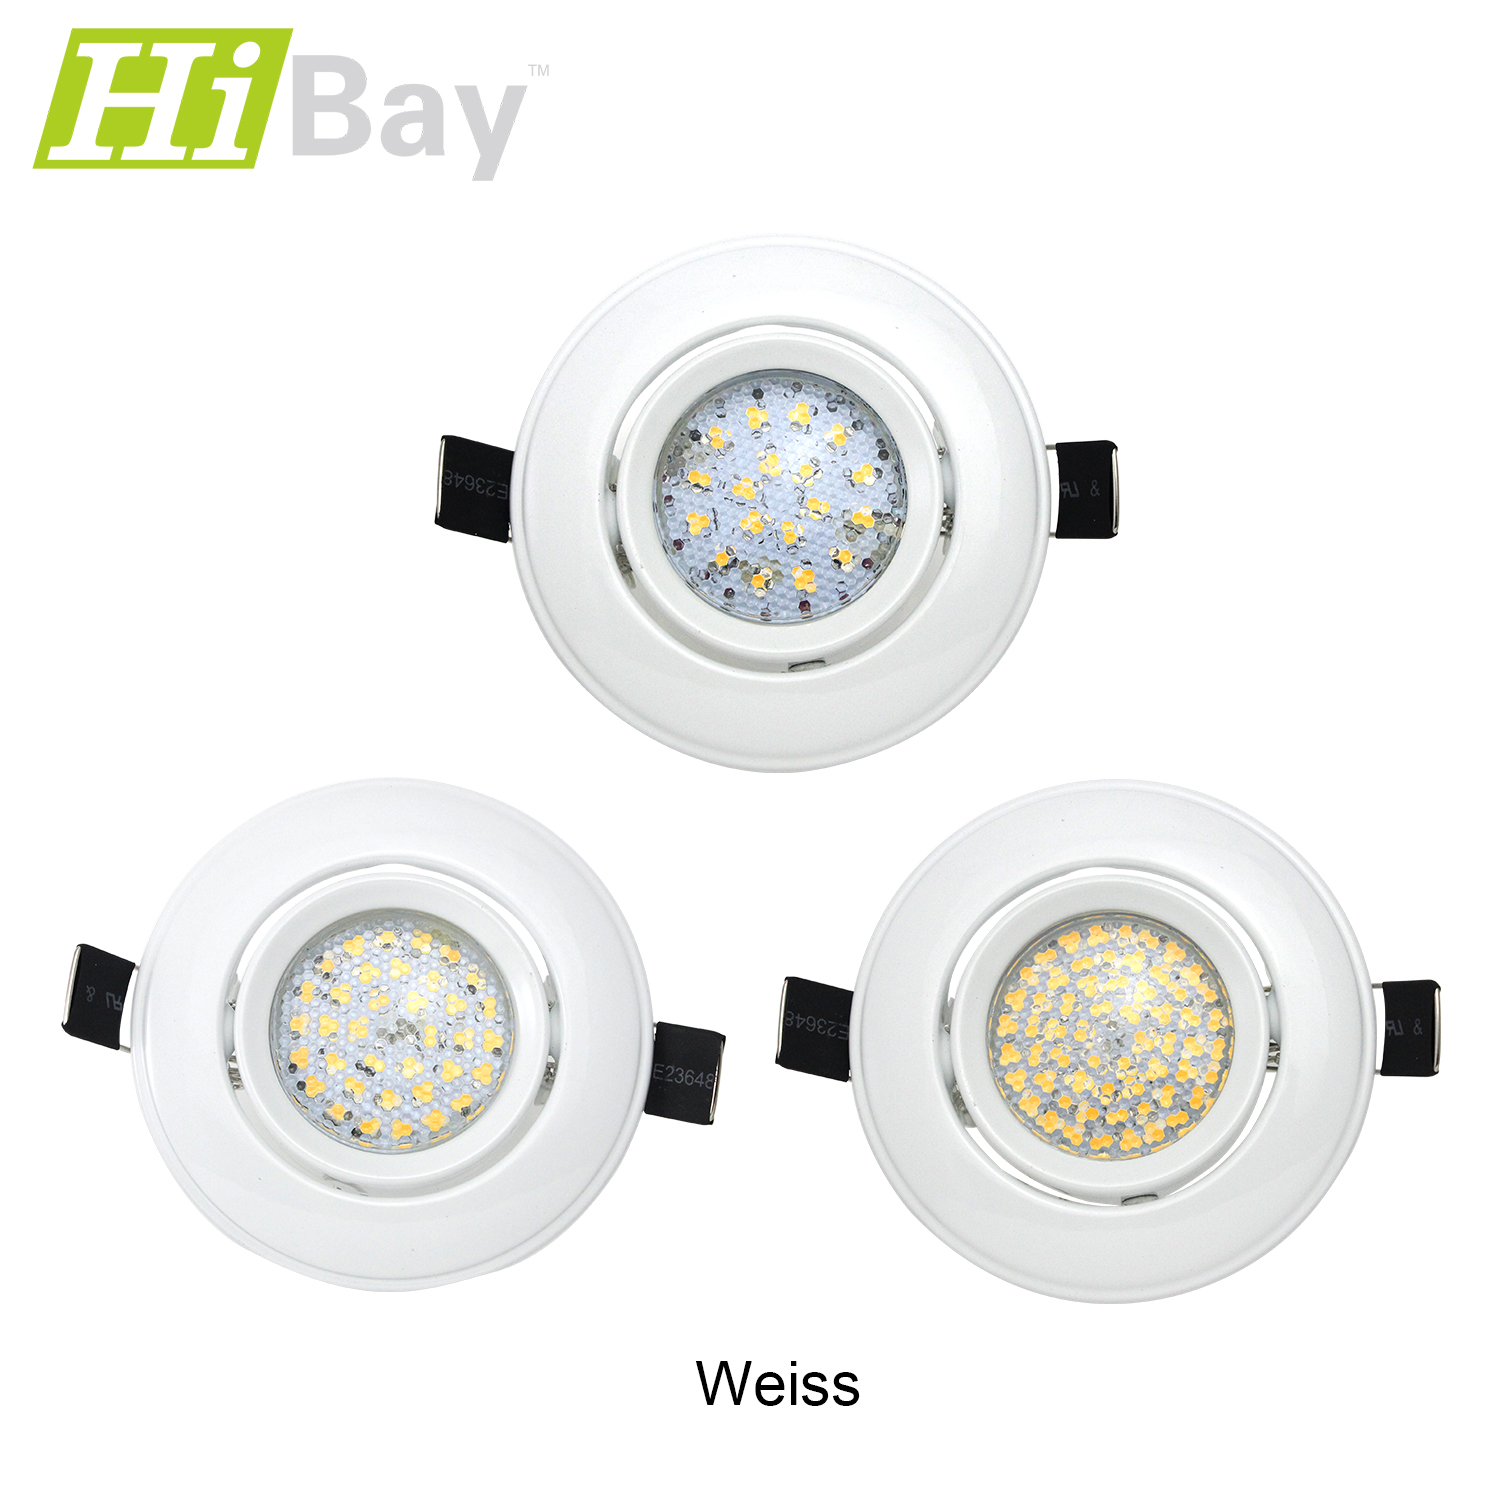 led einbaustrahler set spot 3w 4w 5w 230v strahler gu10 fassung decken lampe ebay. Black Bedroom Furniture Sets. Home Design Ideas